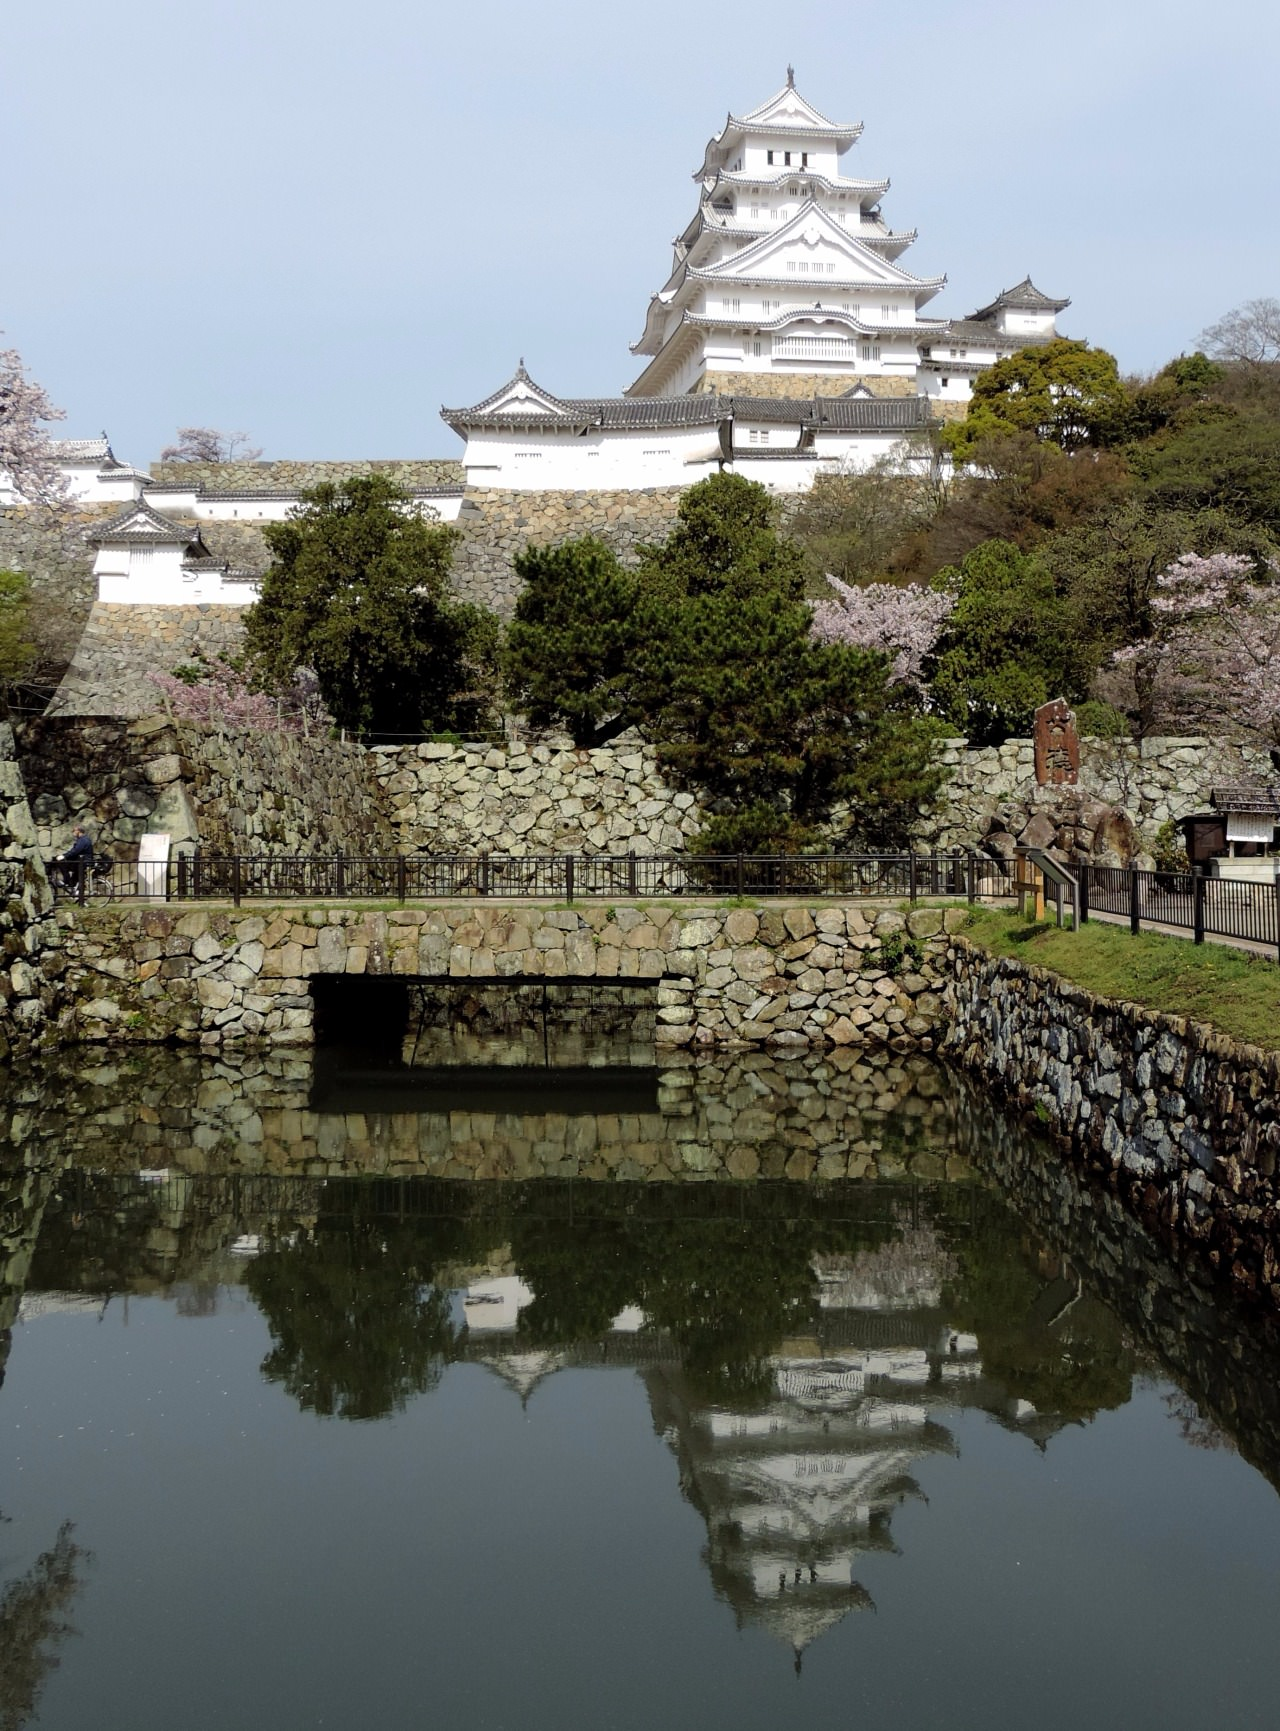 Himeji Castle with reflection in mote